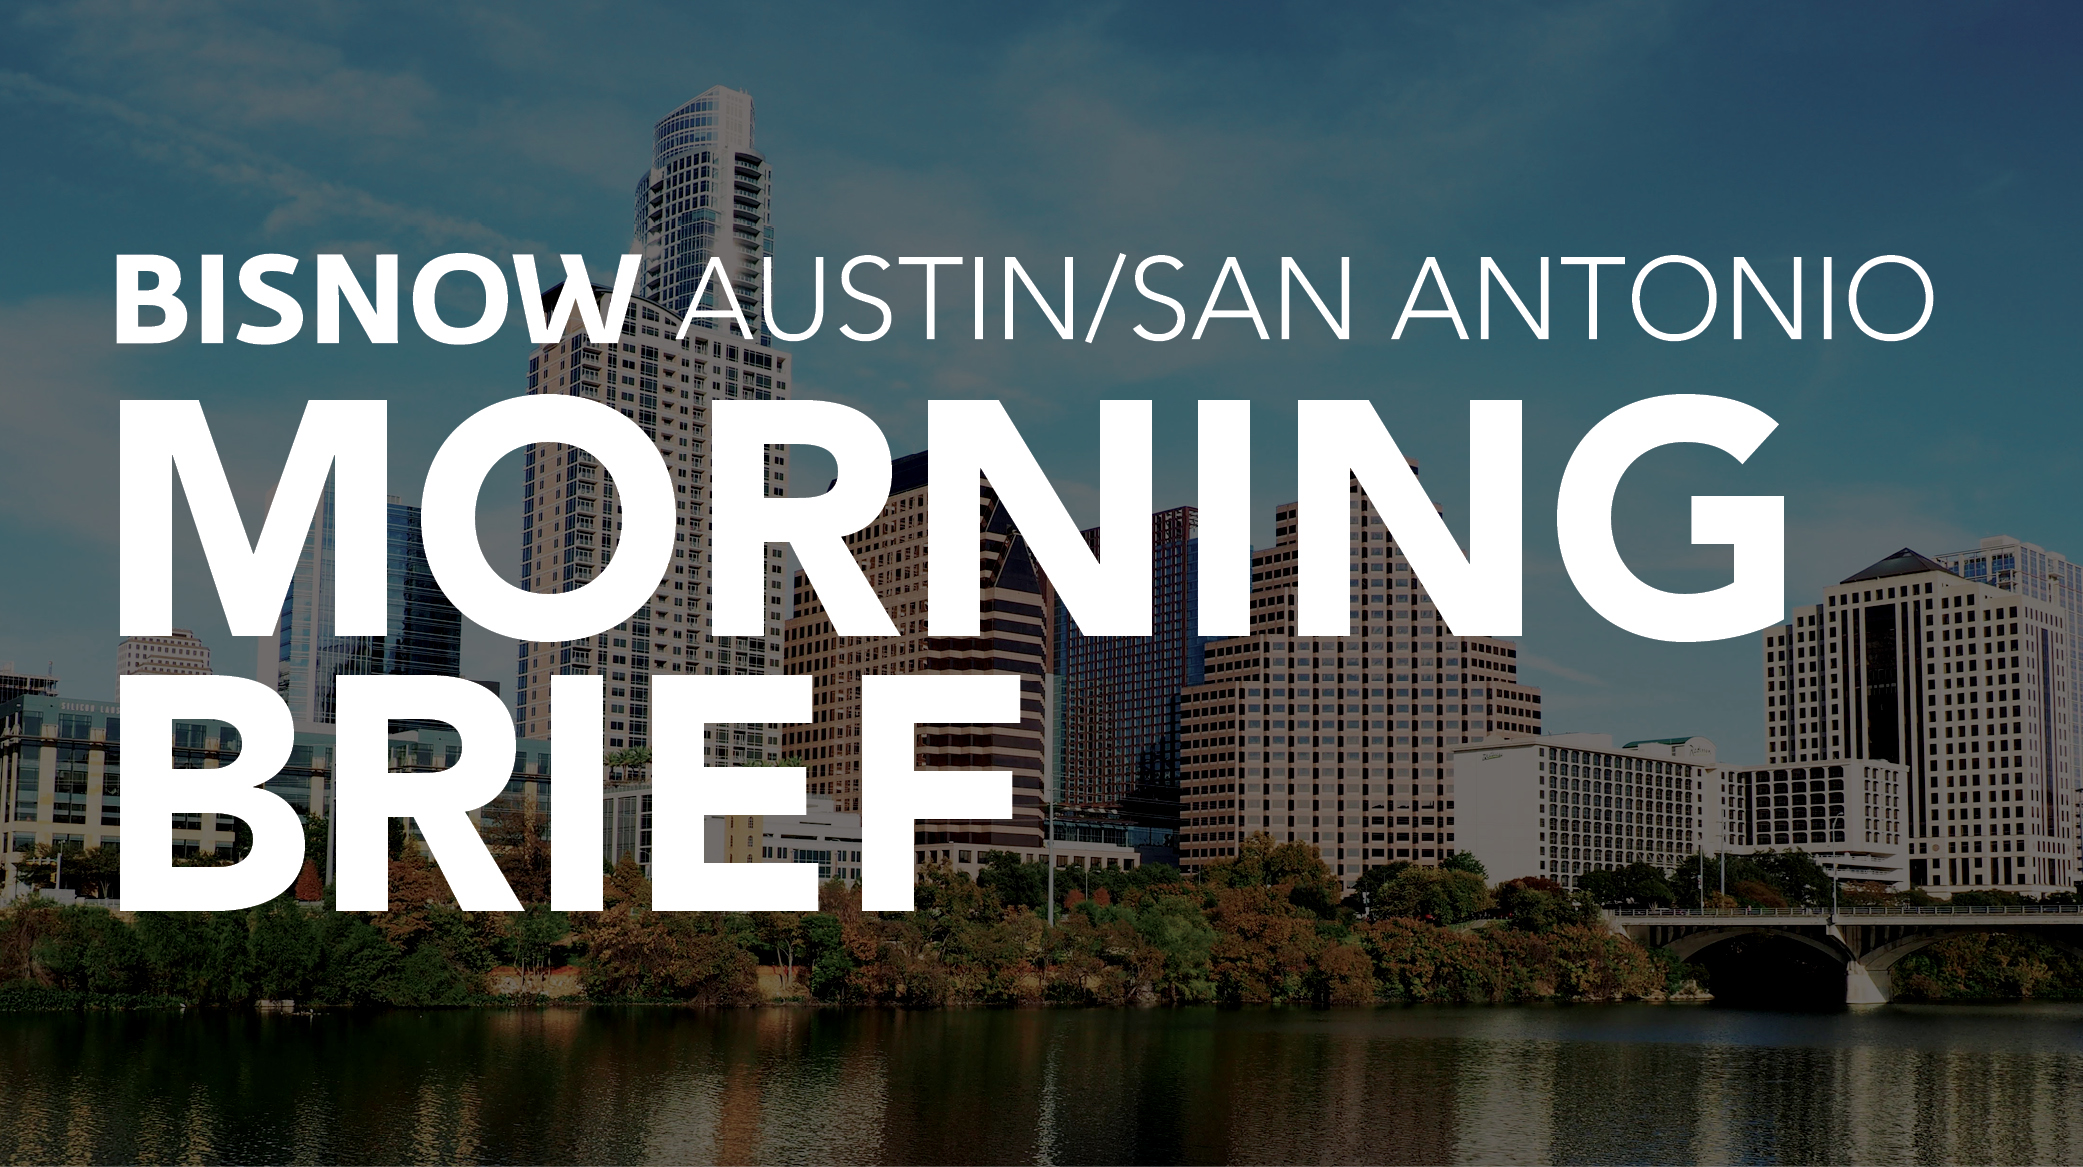 Bisnow Morning Brief Austin/San Antonio